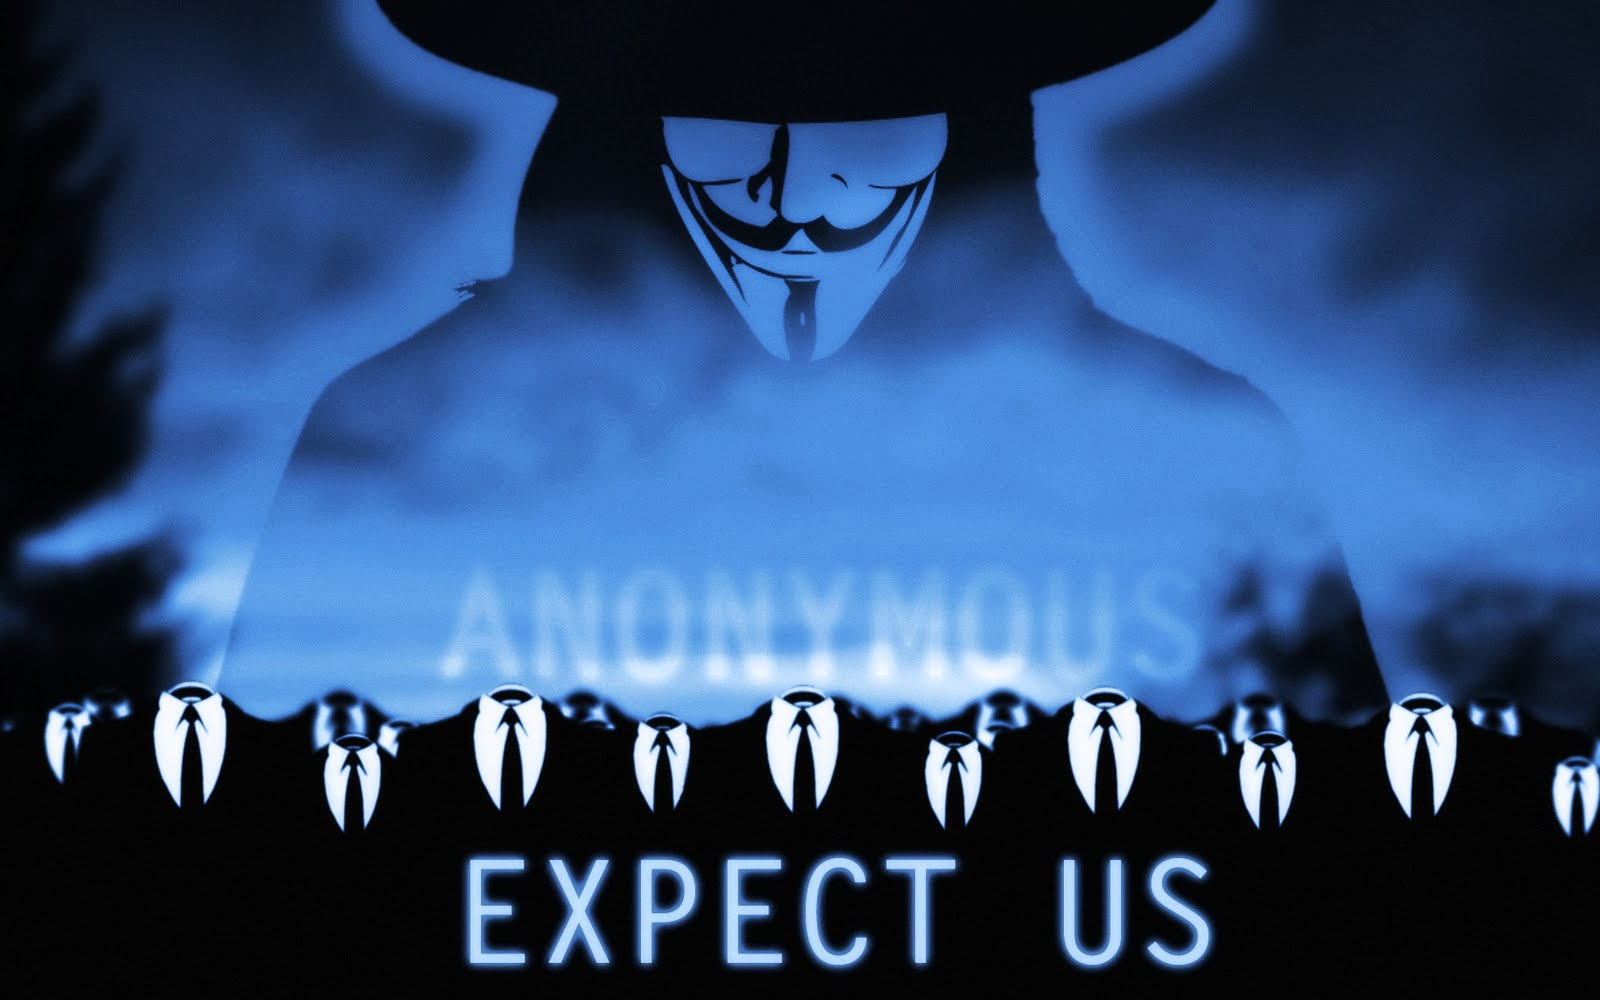 anonymousbigbrotherclone